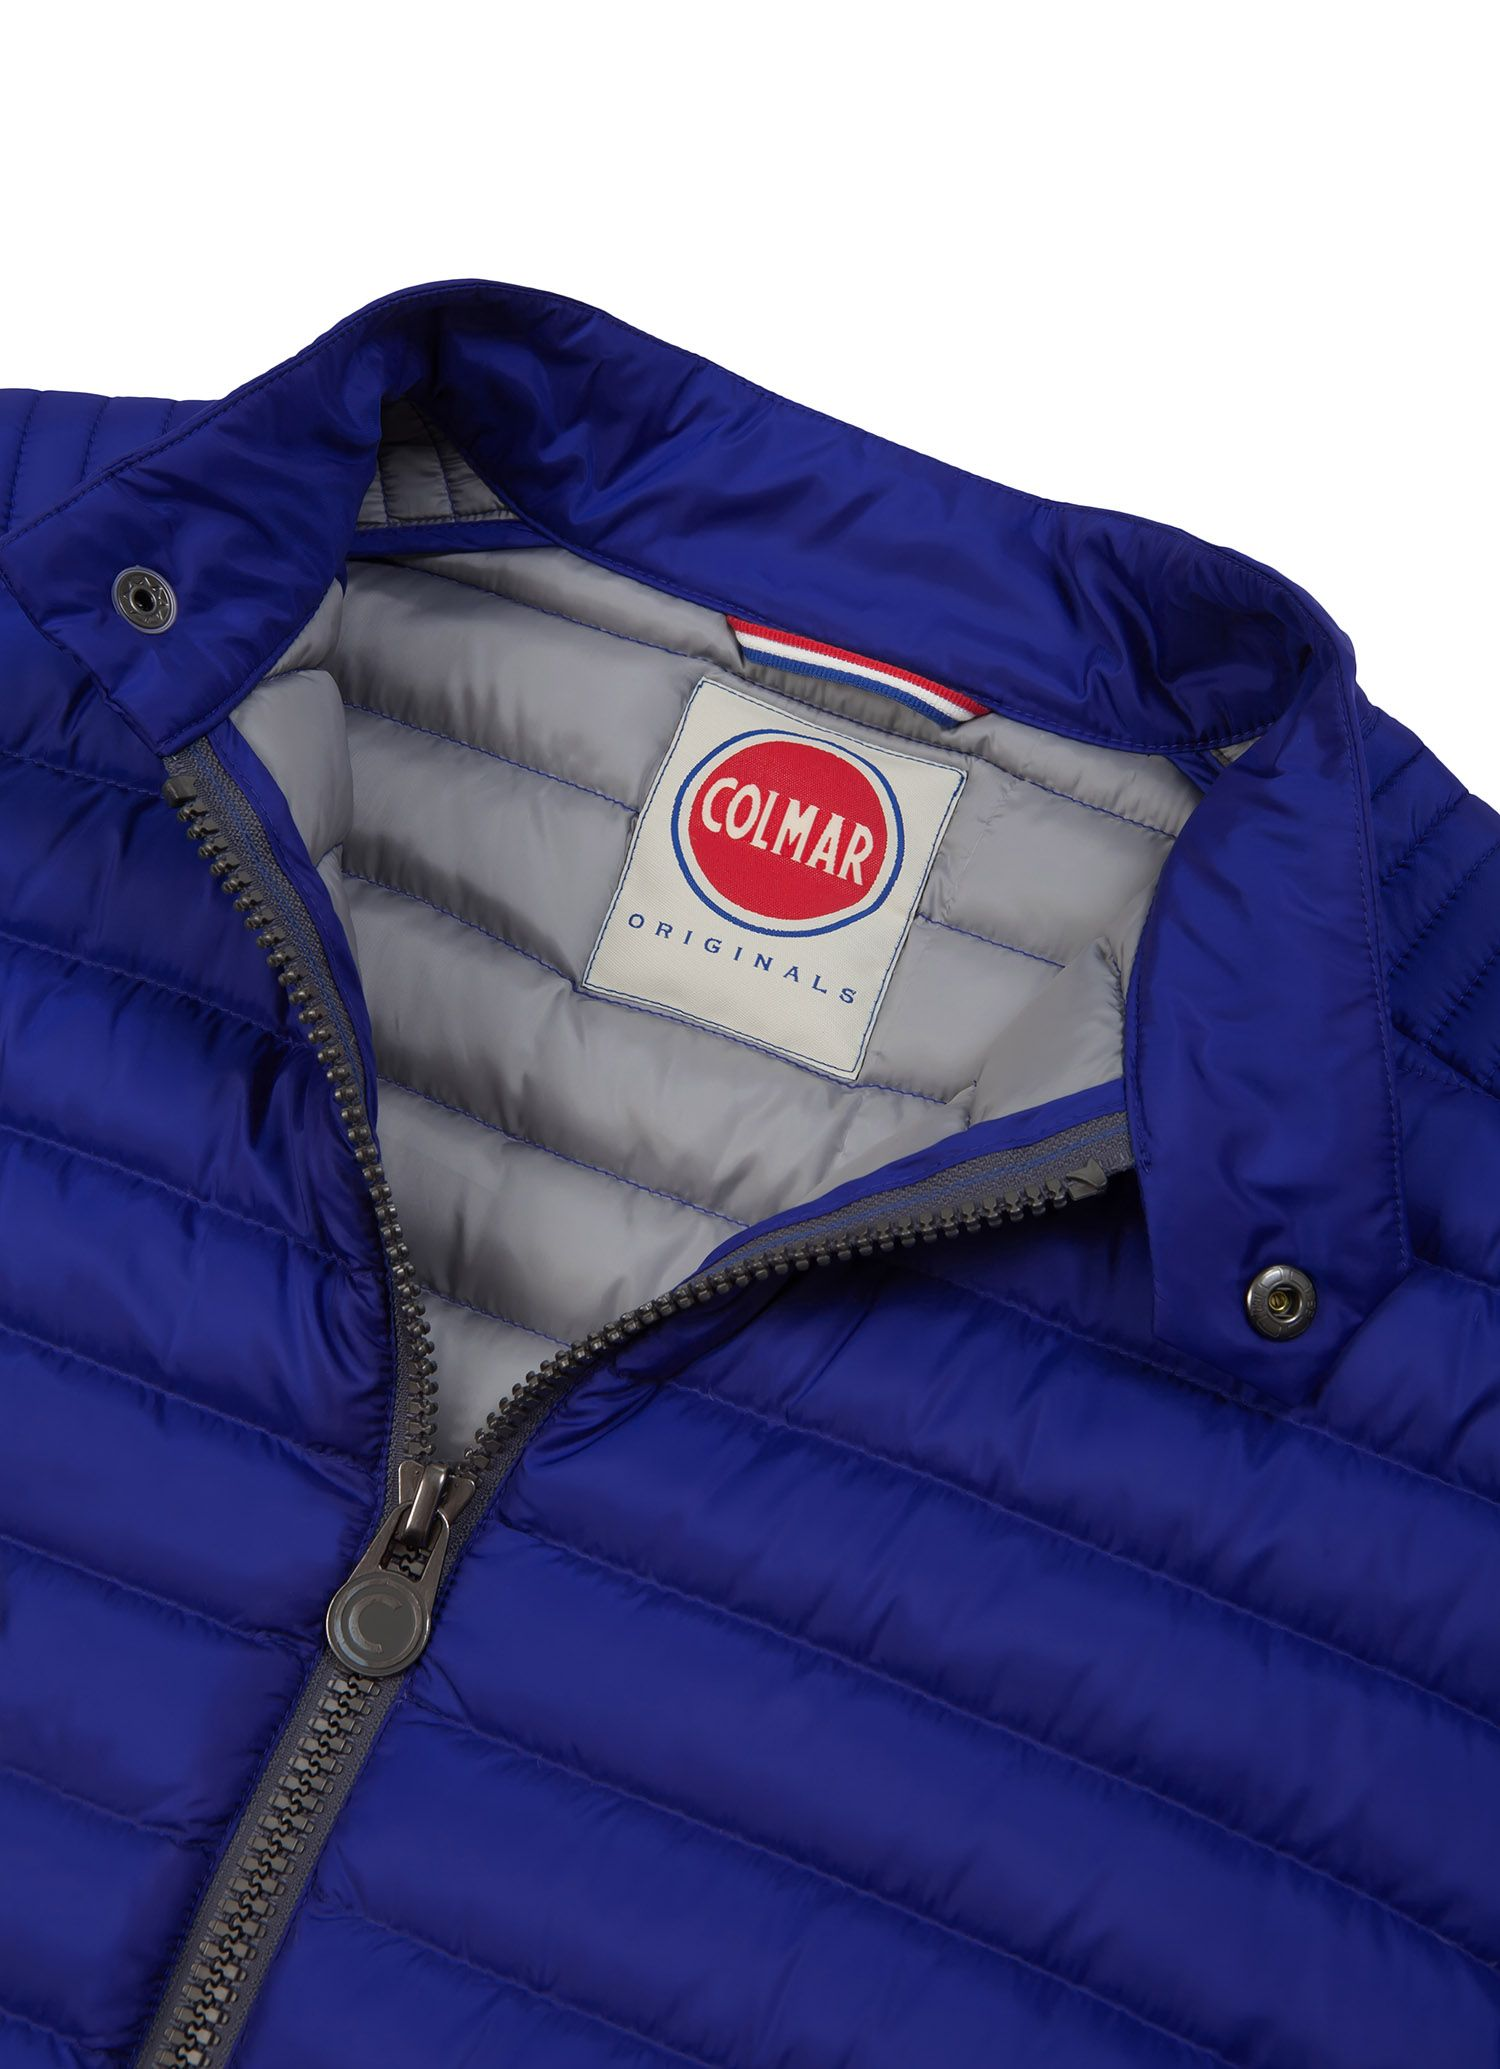 Colmar Originals men's down jacket in ultra-lightweight fabric with natural  down feather padding -